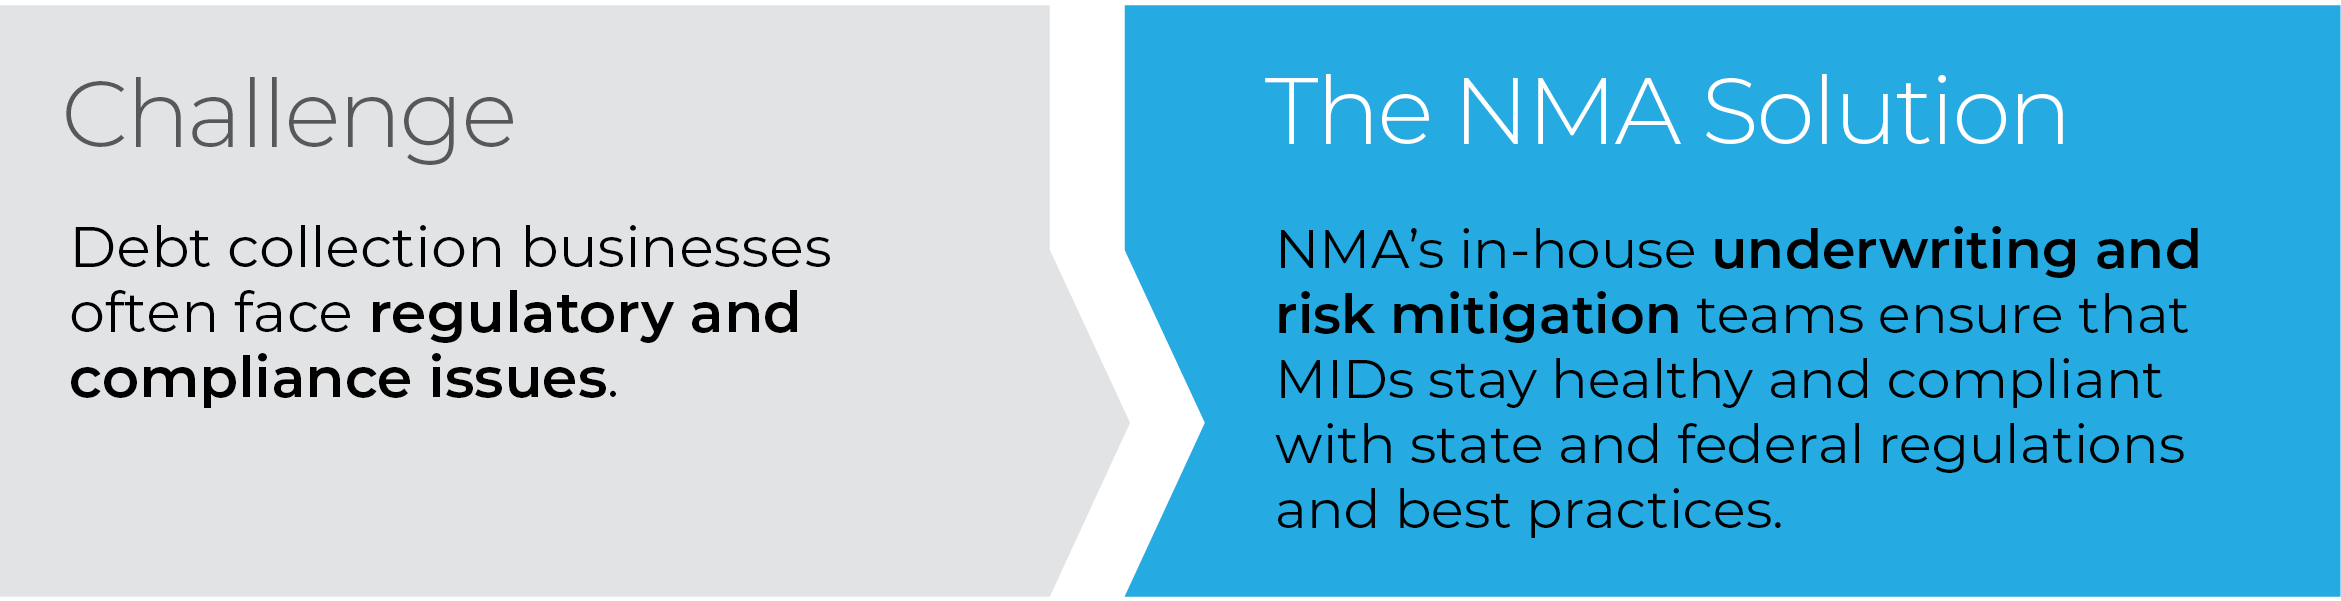 NMA's in-house underwriting and risk mitigation teams ensure that MIDs stay healthy and compliant with state and federal regulations and best practices.